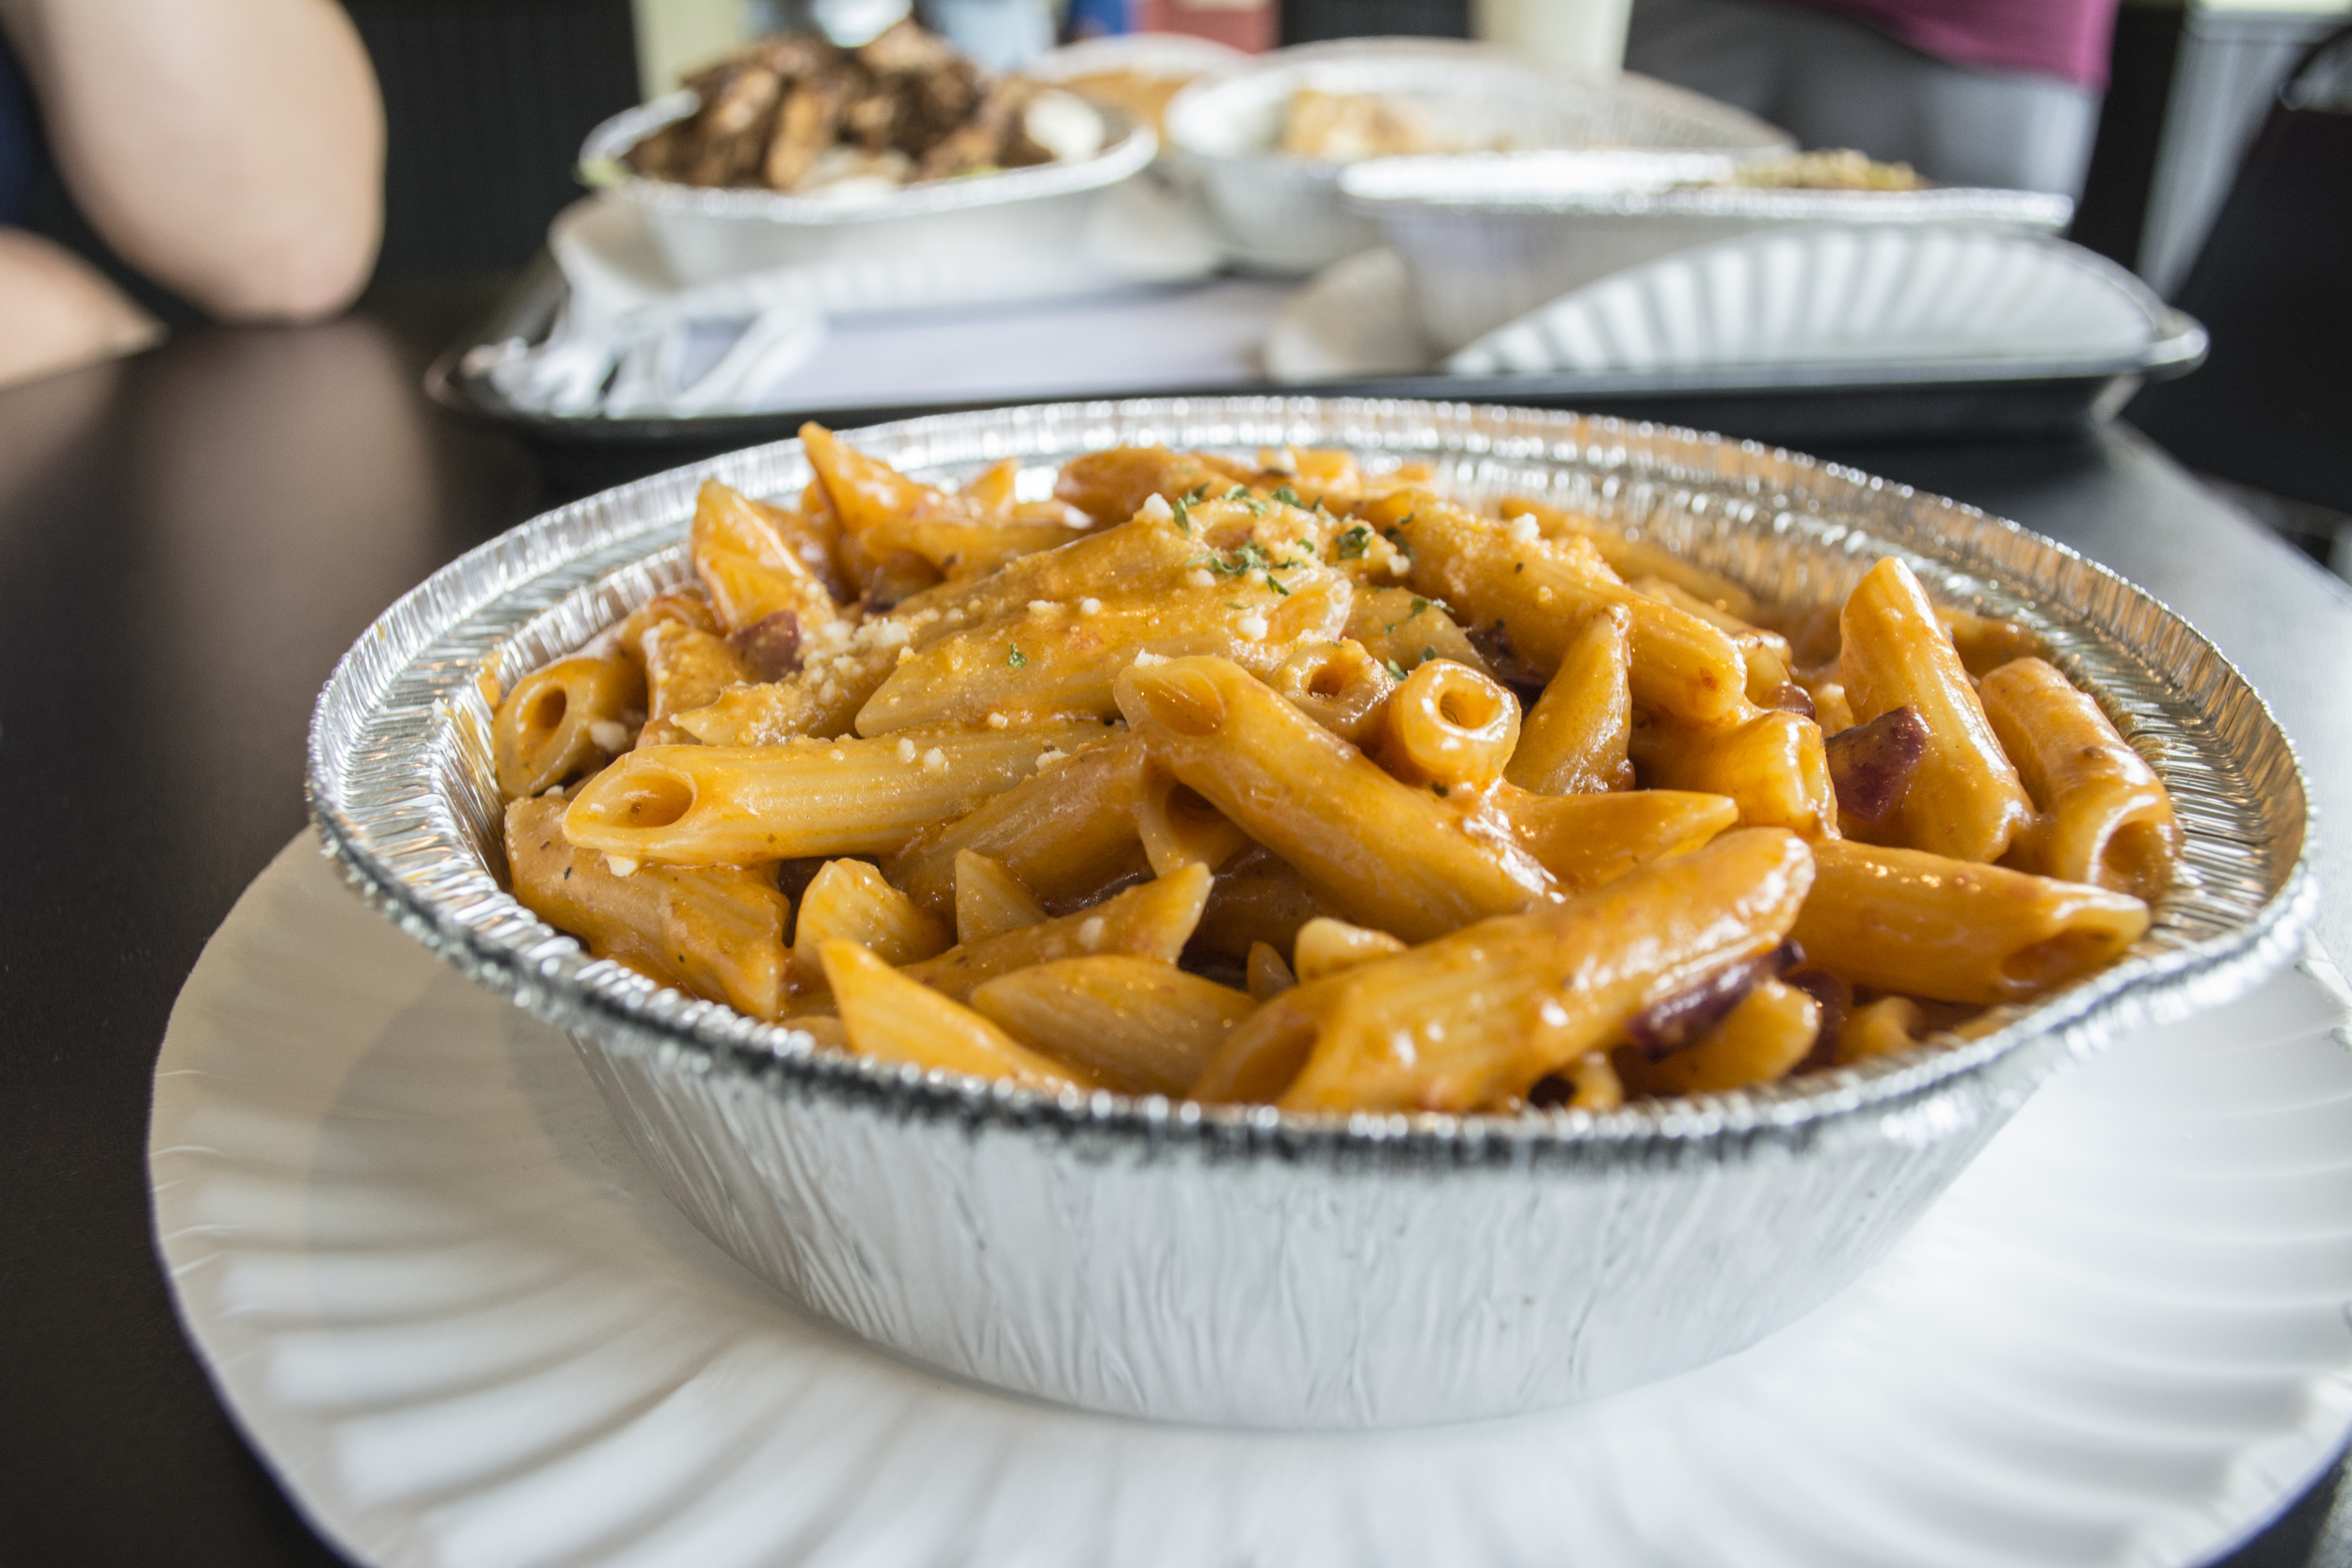 The penne ala vodka at Jonny D's Pizza is both creamy and hearty, and provides blasts of flavor in each bite.